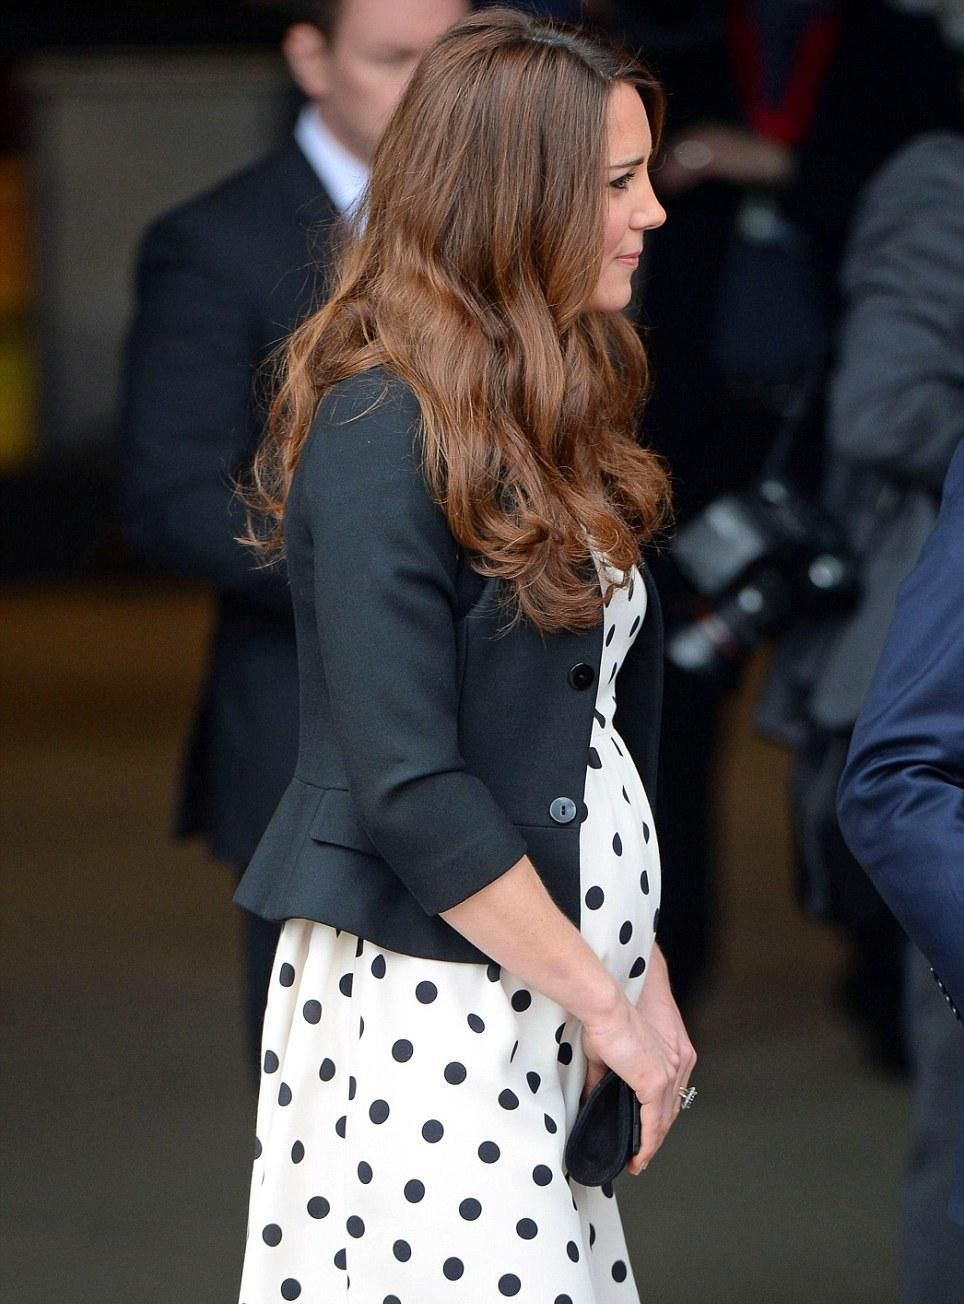 Ralph lauren fitted black jacket kates jackets pinterest kate middleton ombrellifo Gallery